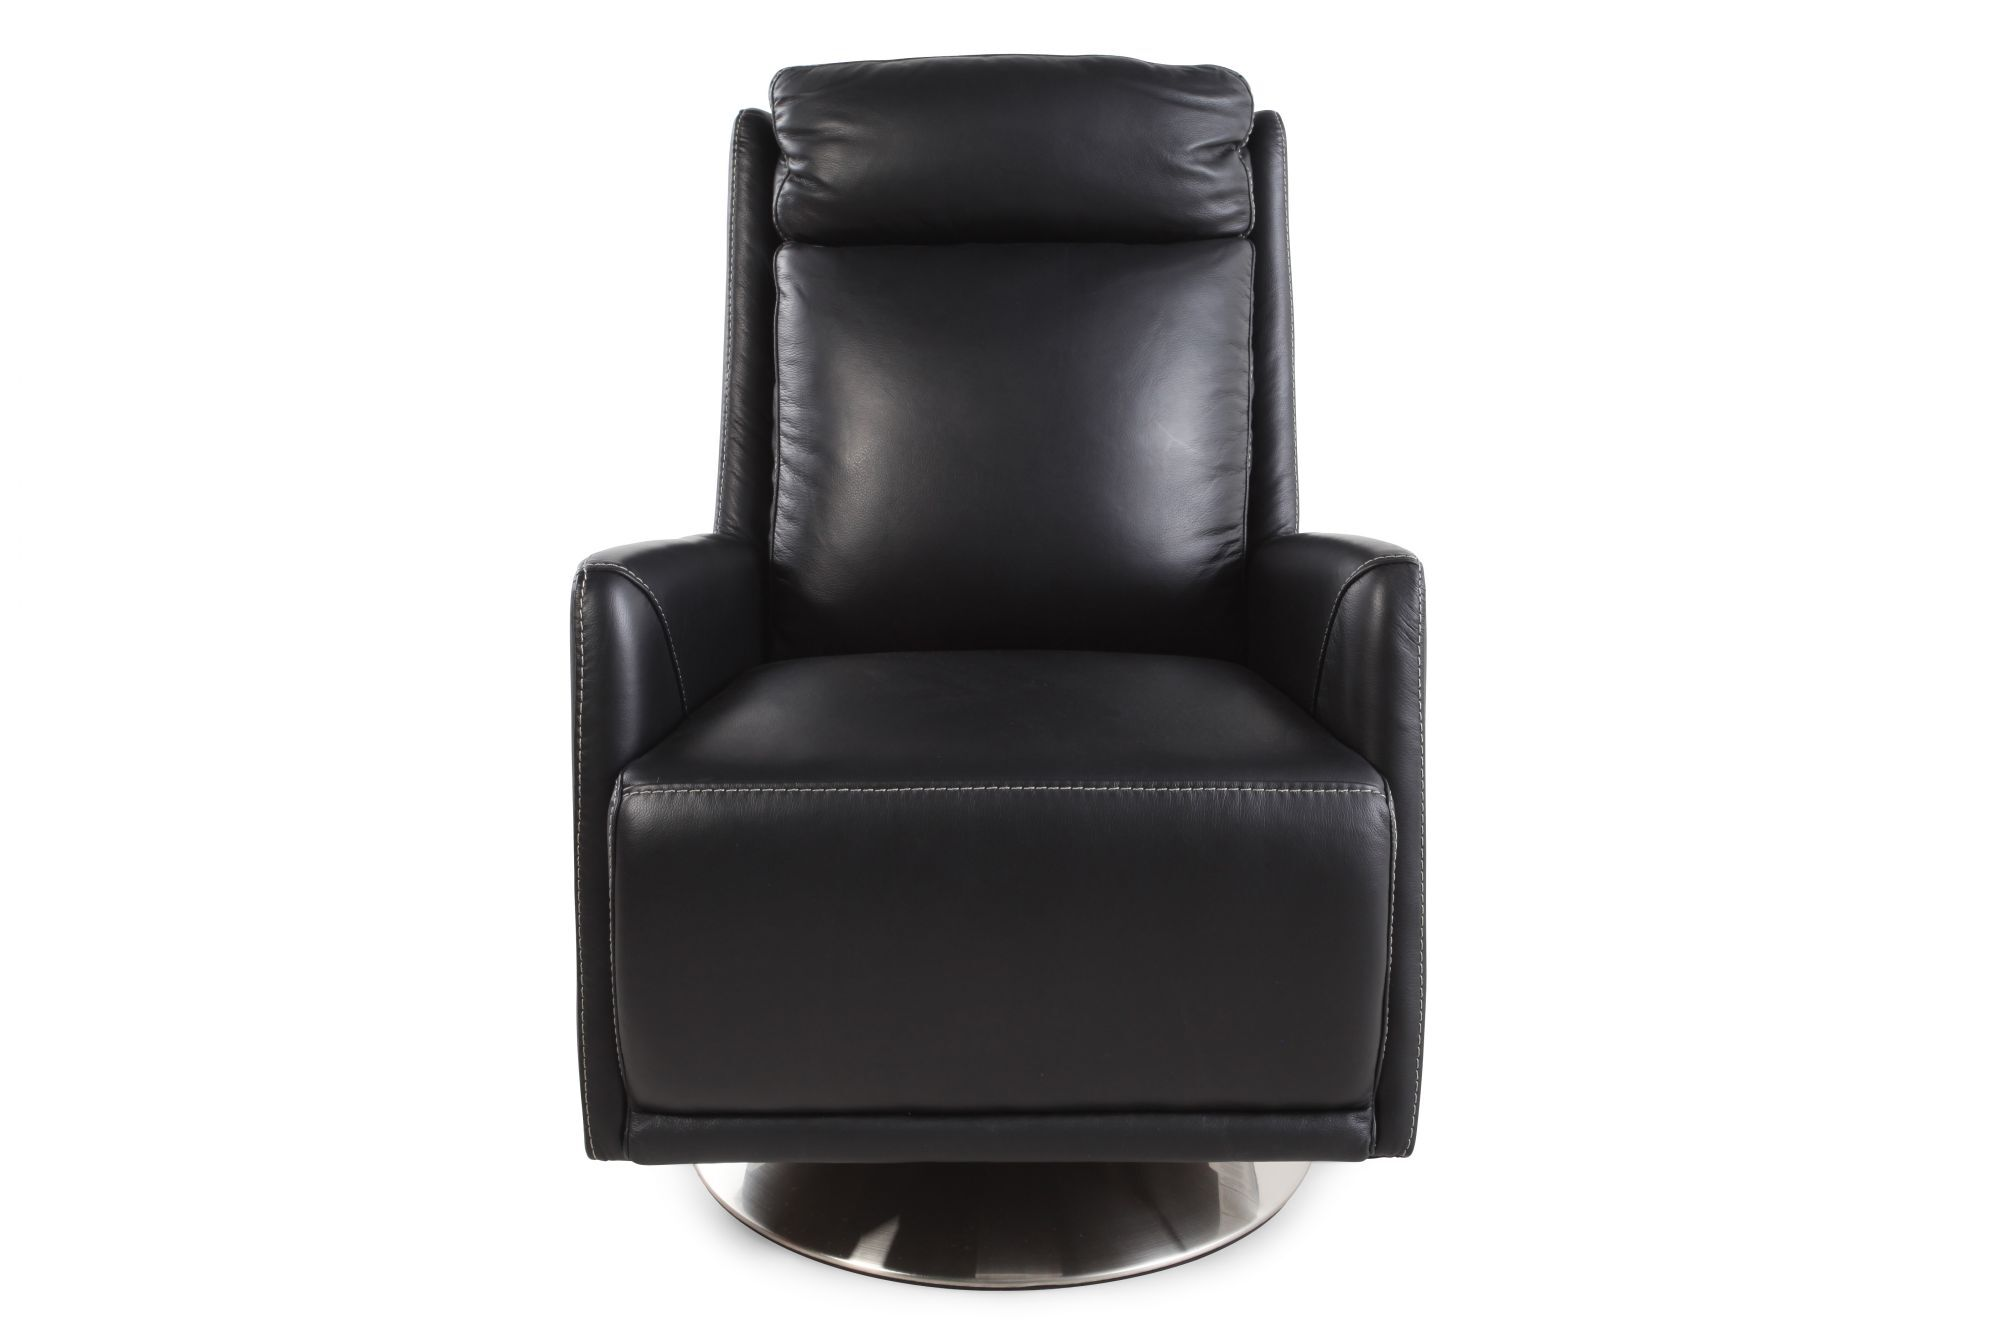 tall swivel chair marilyn monroe back leather in black mathis brothers furniture